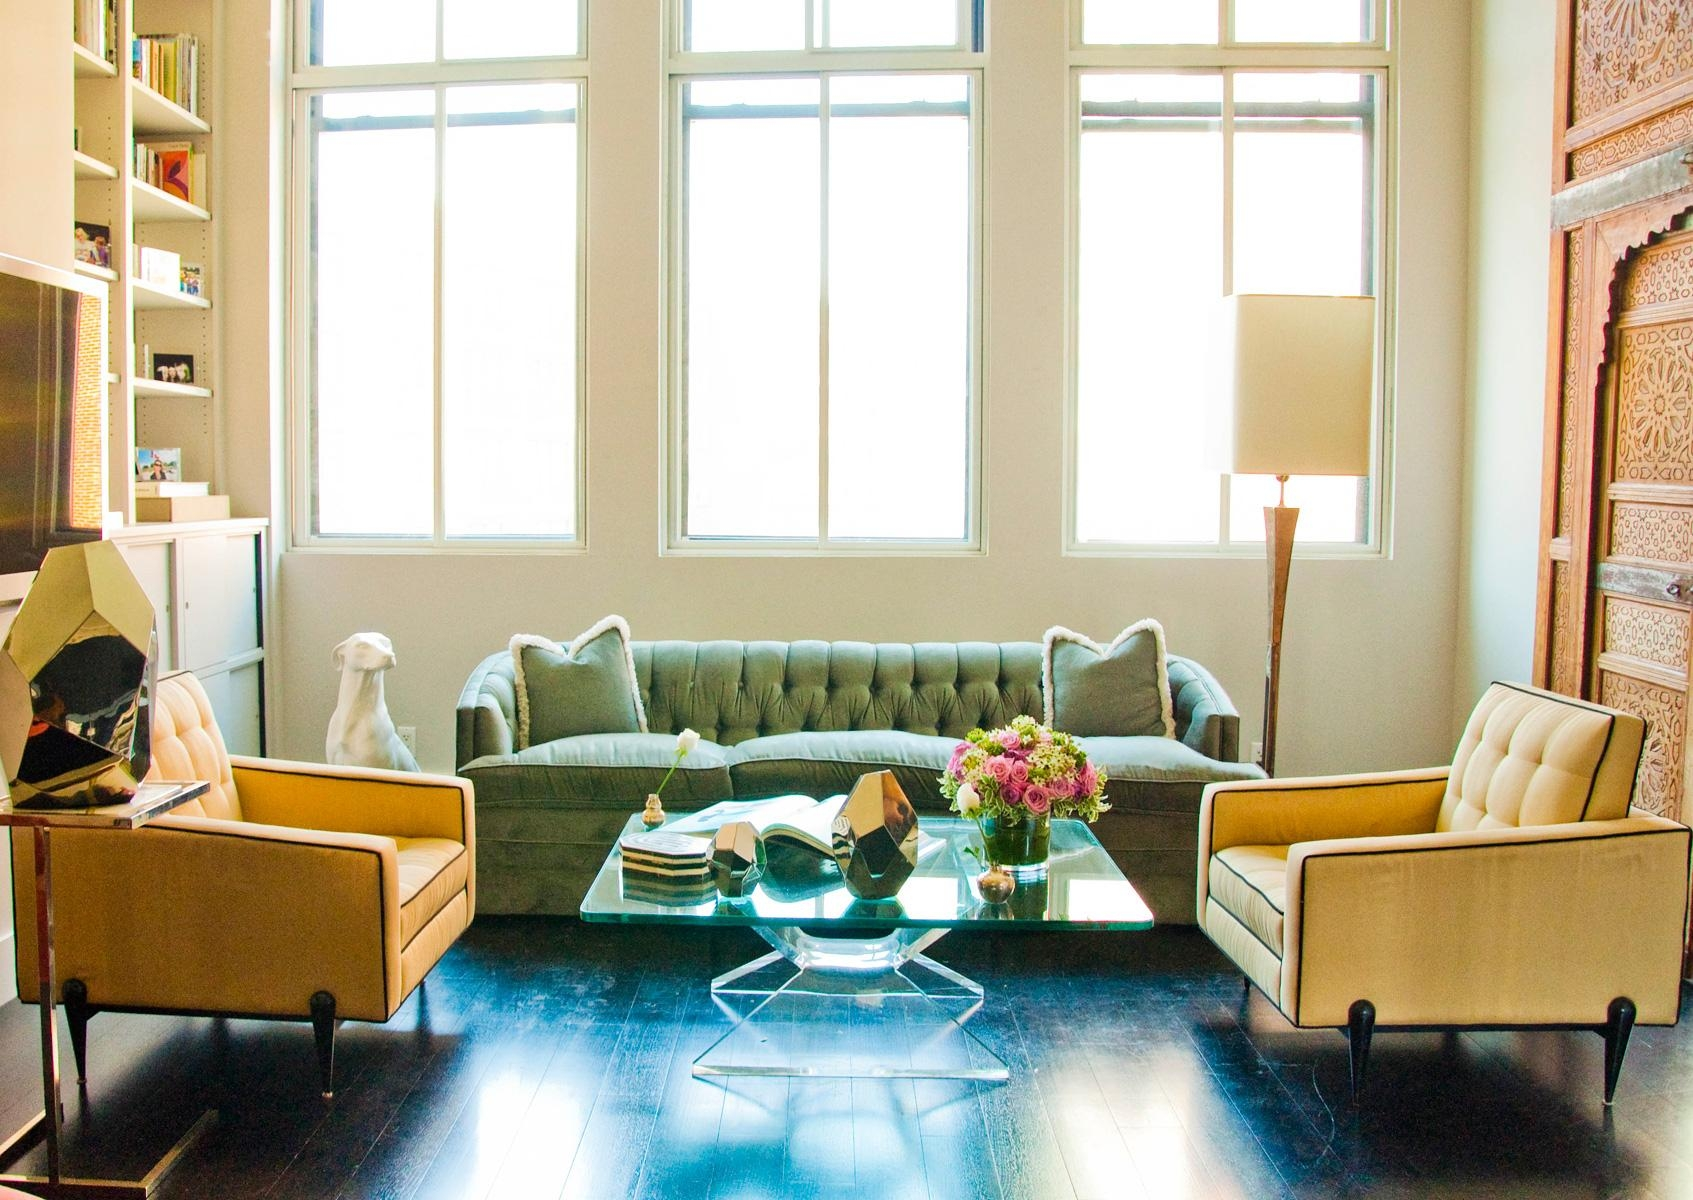 25 Best Ideas About Green Couch Decor On Pinterest | Sofa Intended For Seafoam Green Couches (Image 2 of 20)